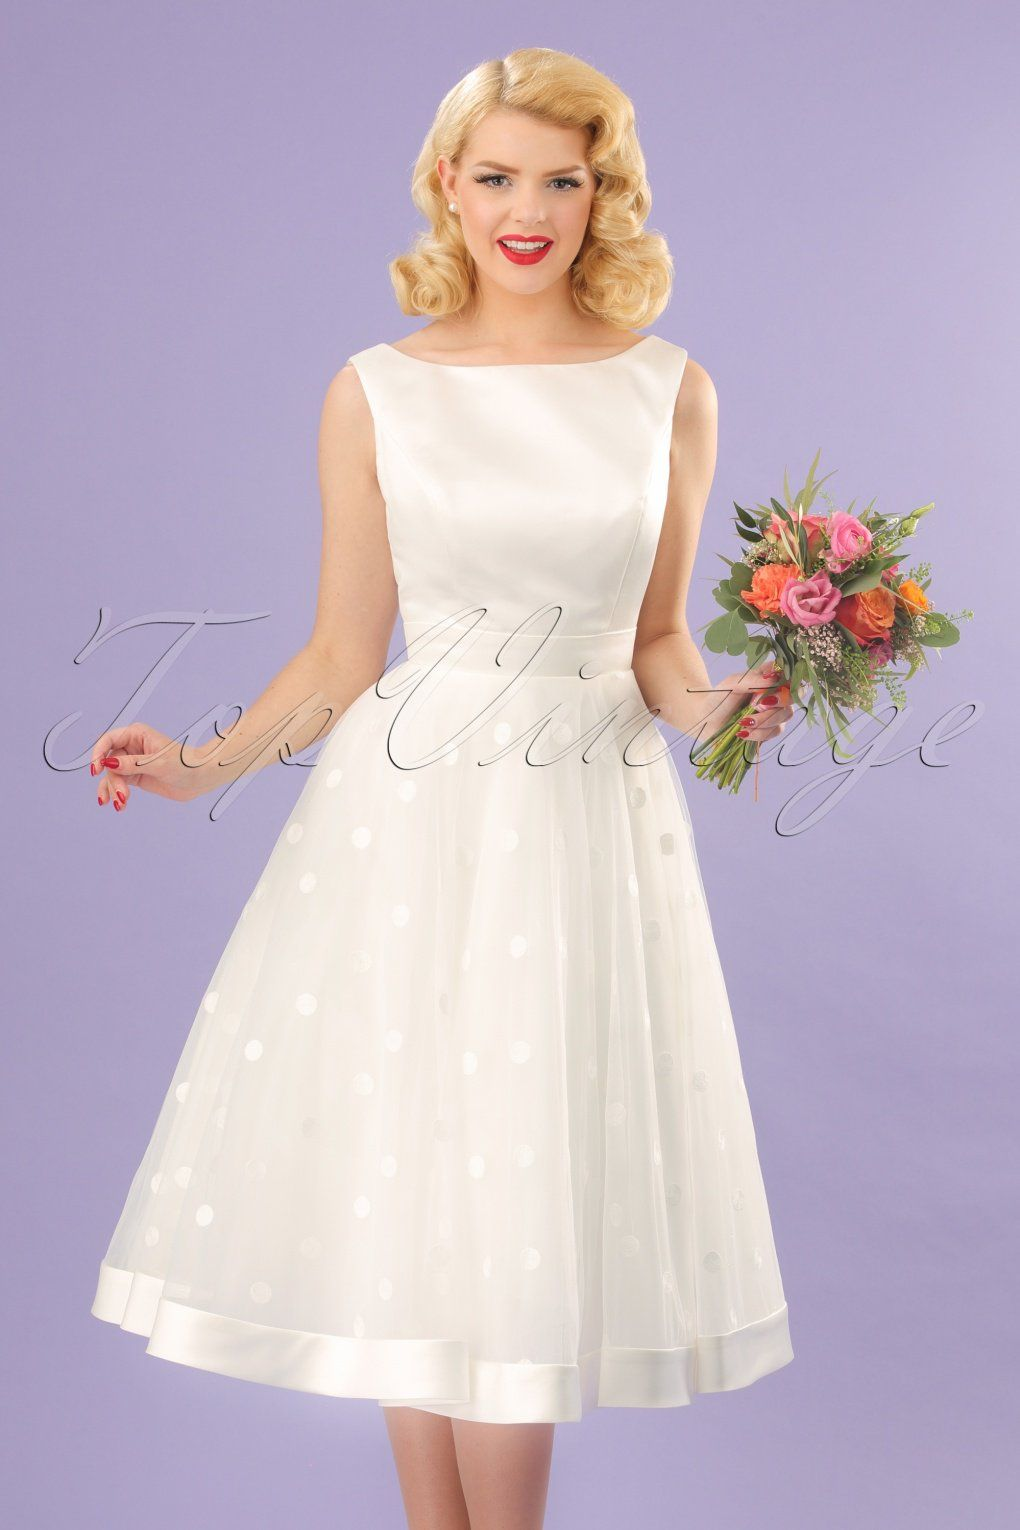 50s Meagan Polkadot Bridal Gown in Ivory White | Vintage Style ...